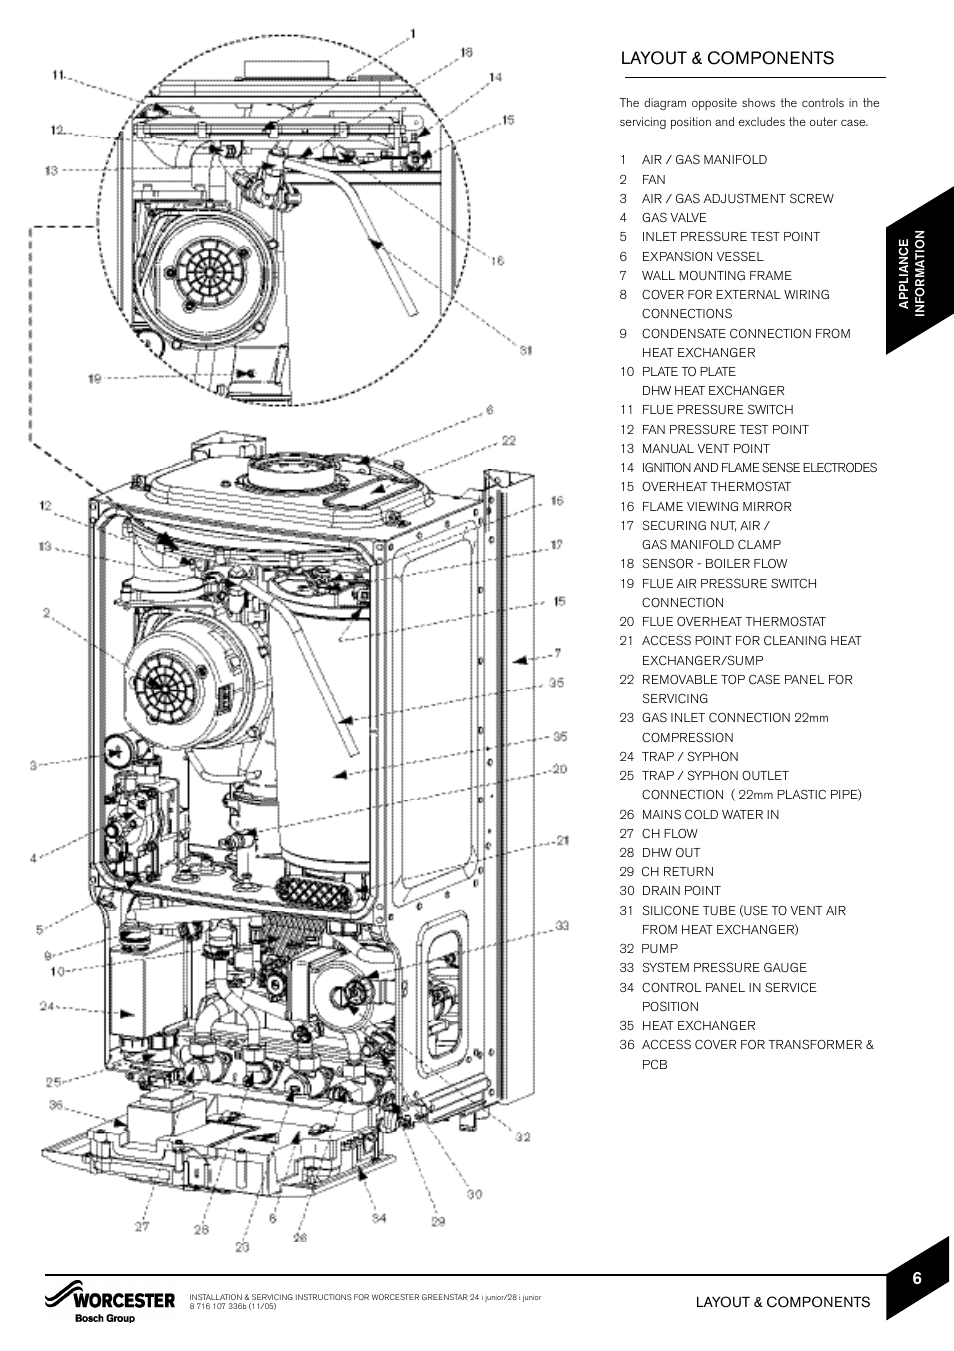 worcester bosch 24i system boiler wiring diagram 3 speed electric motor layout components greenstar junior user manual page 7 62